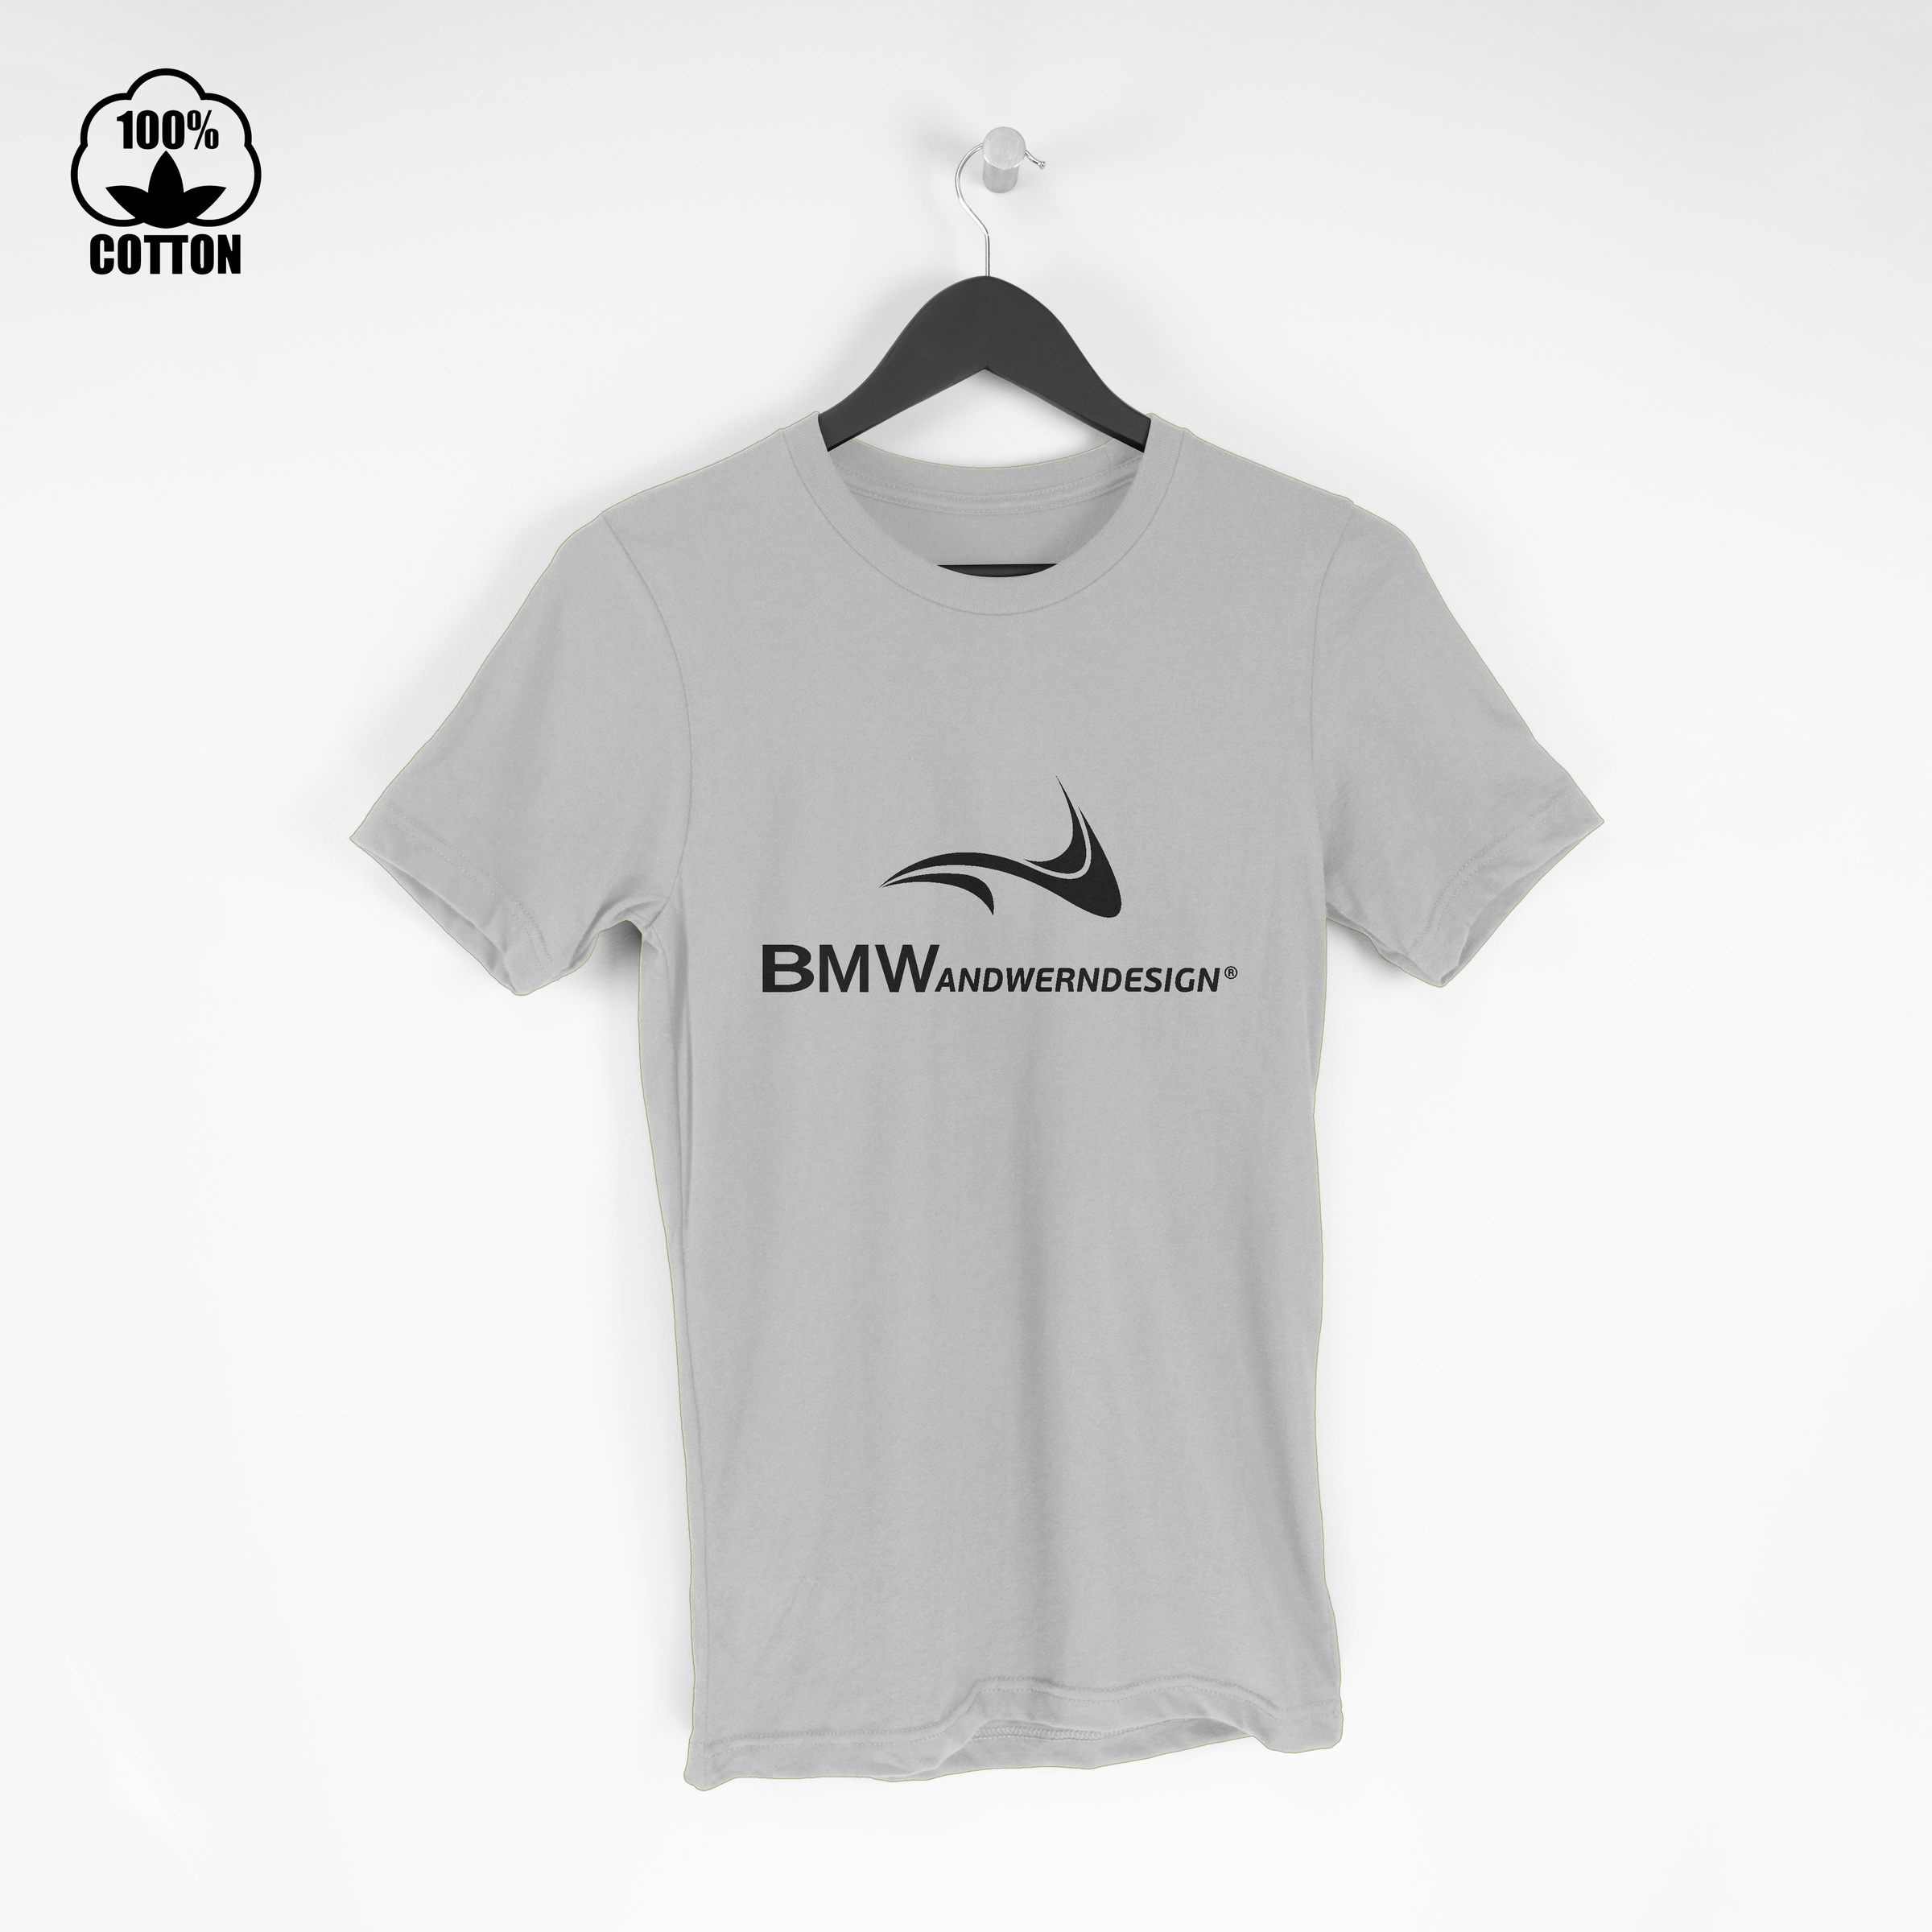 Bmw Andwerndesign Logo T-Shirt New Design Short Sleeve c.jpg